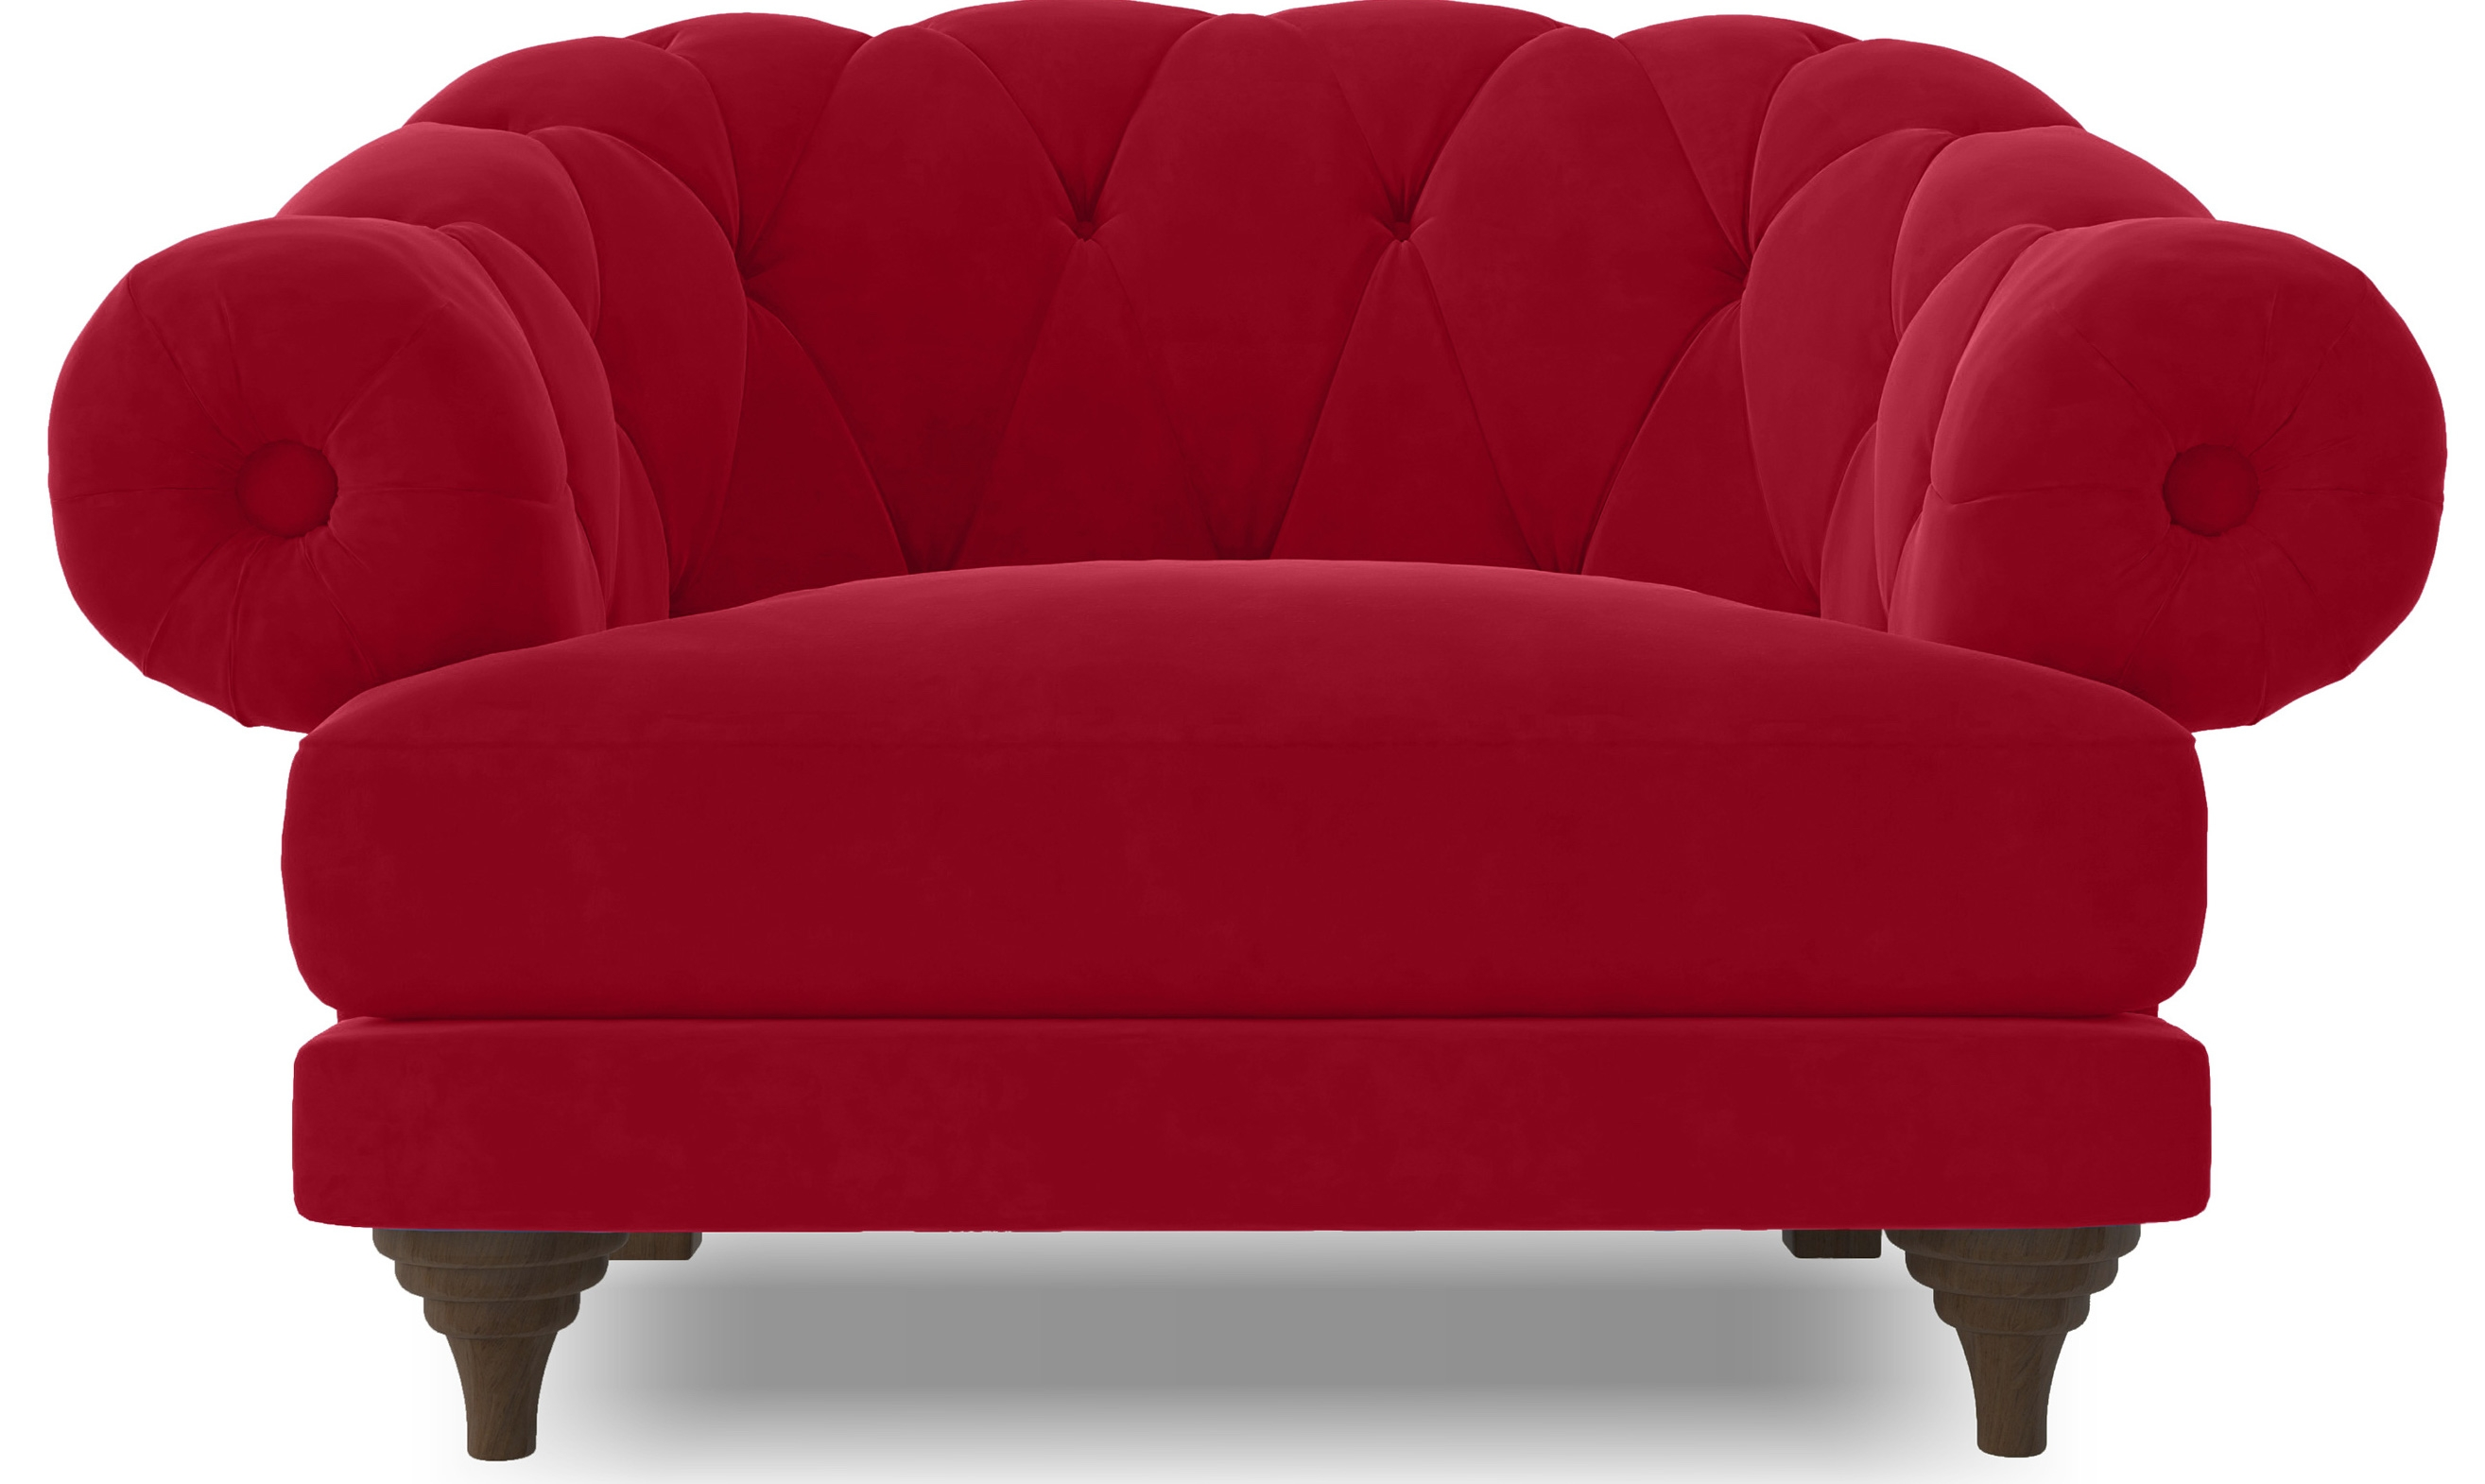 Fauteuils Chesterfield Rouge Fauteuil Chesterfield Velours Rose